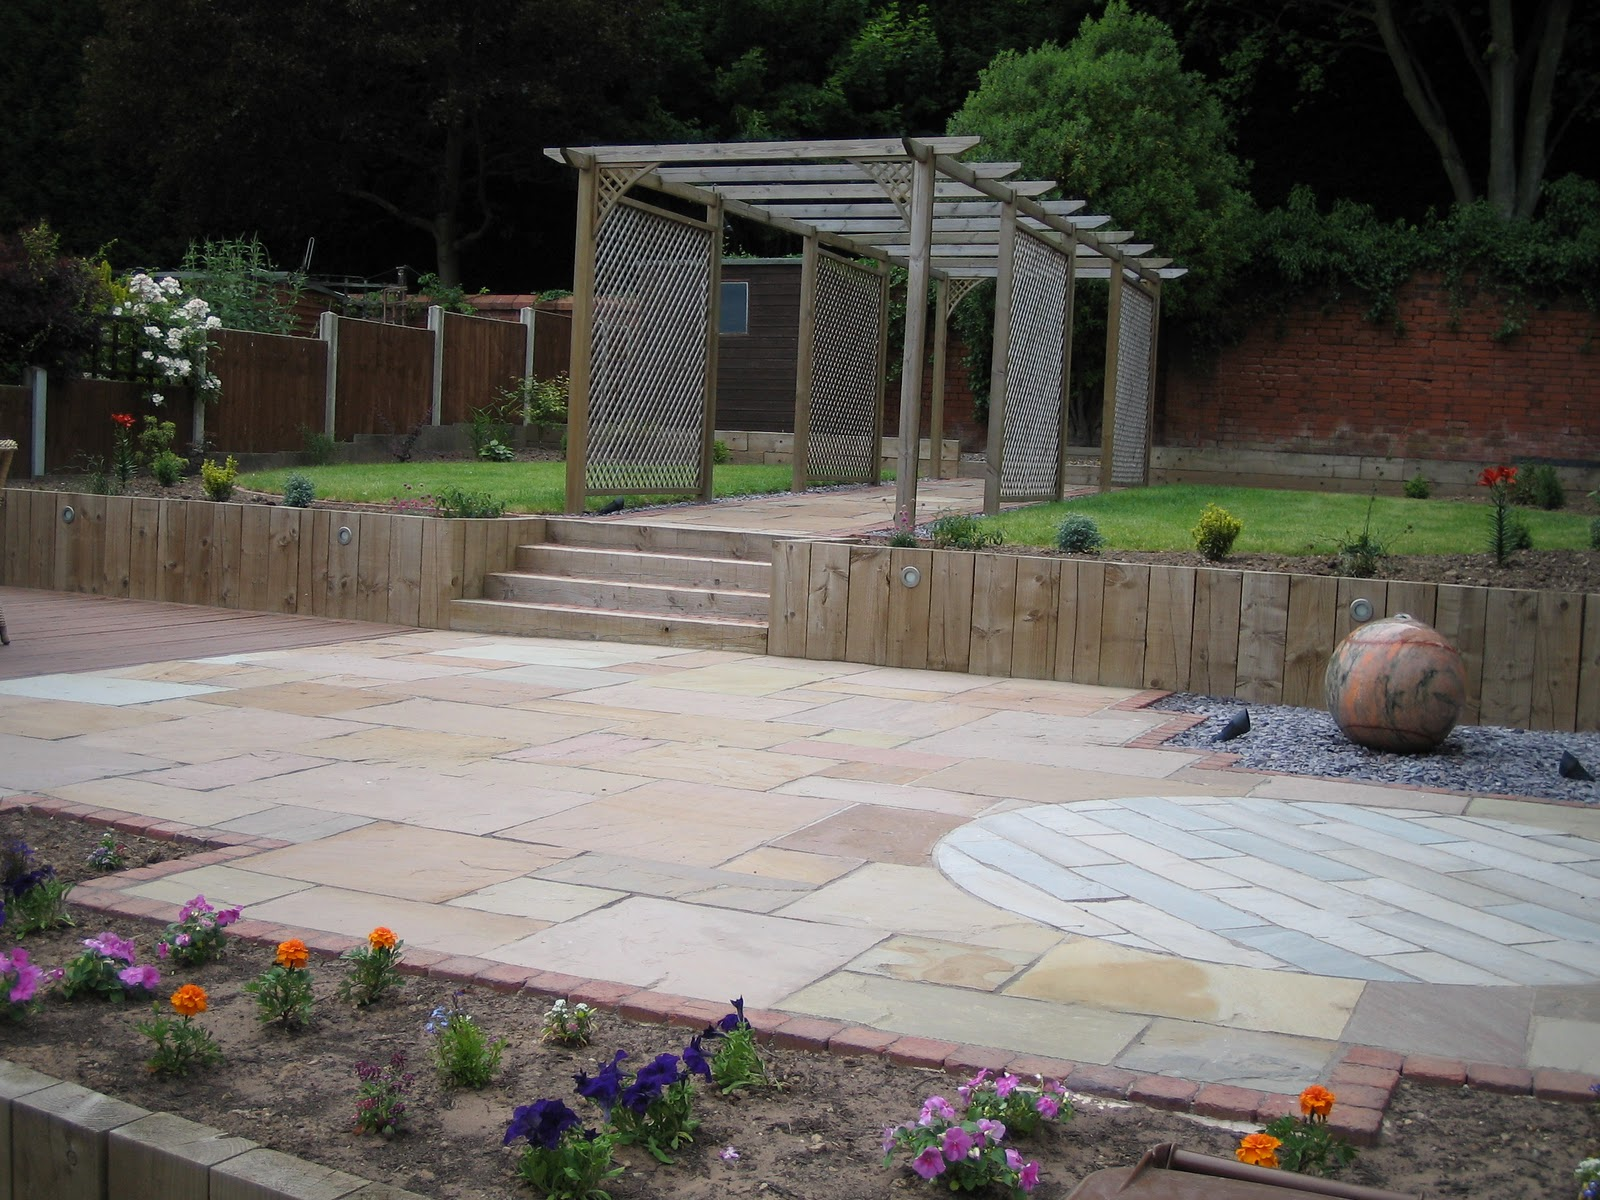 Barton Fields Patio and Garden Centre: New Garden Design Creation ...